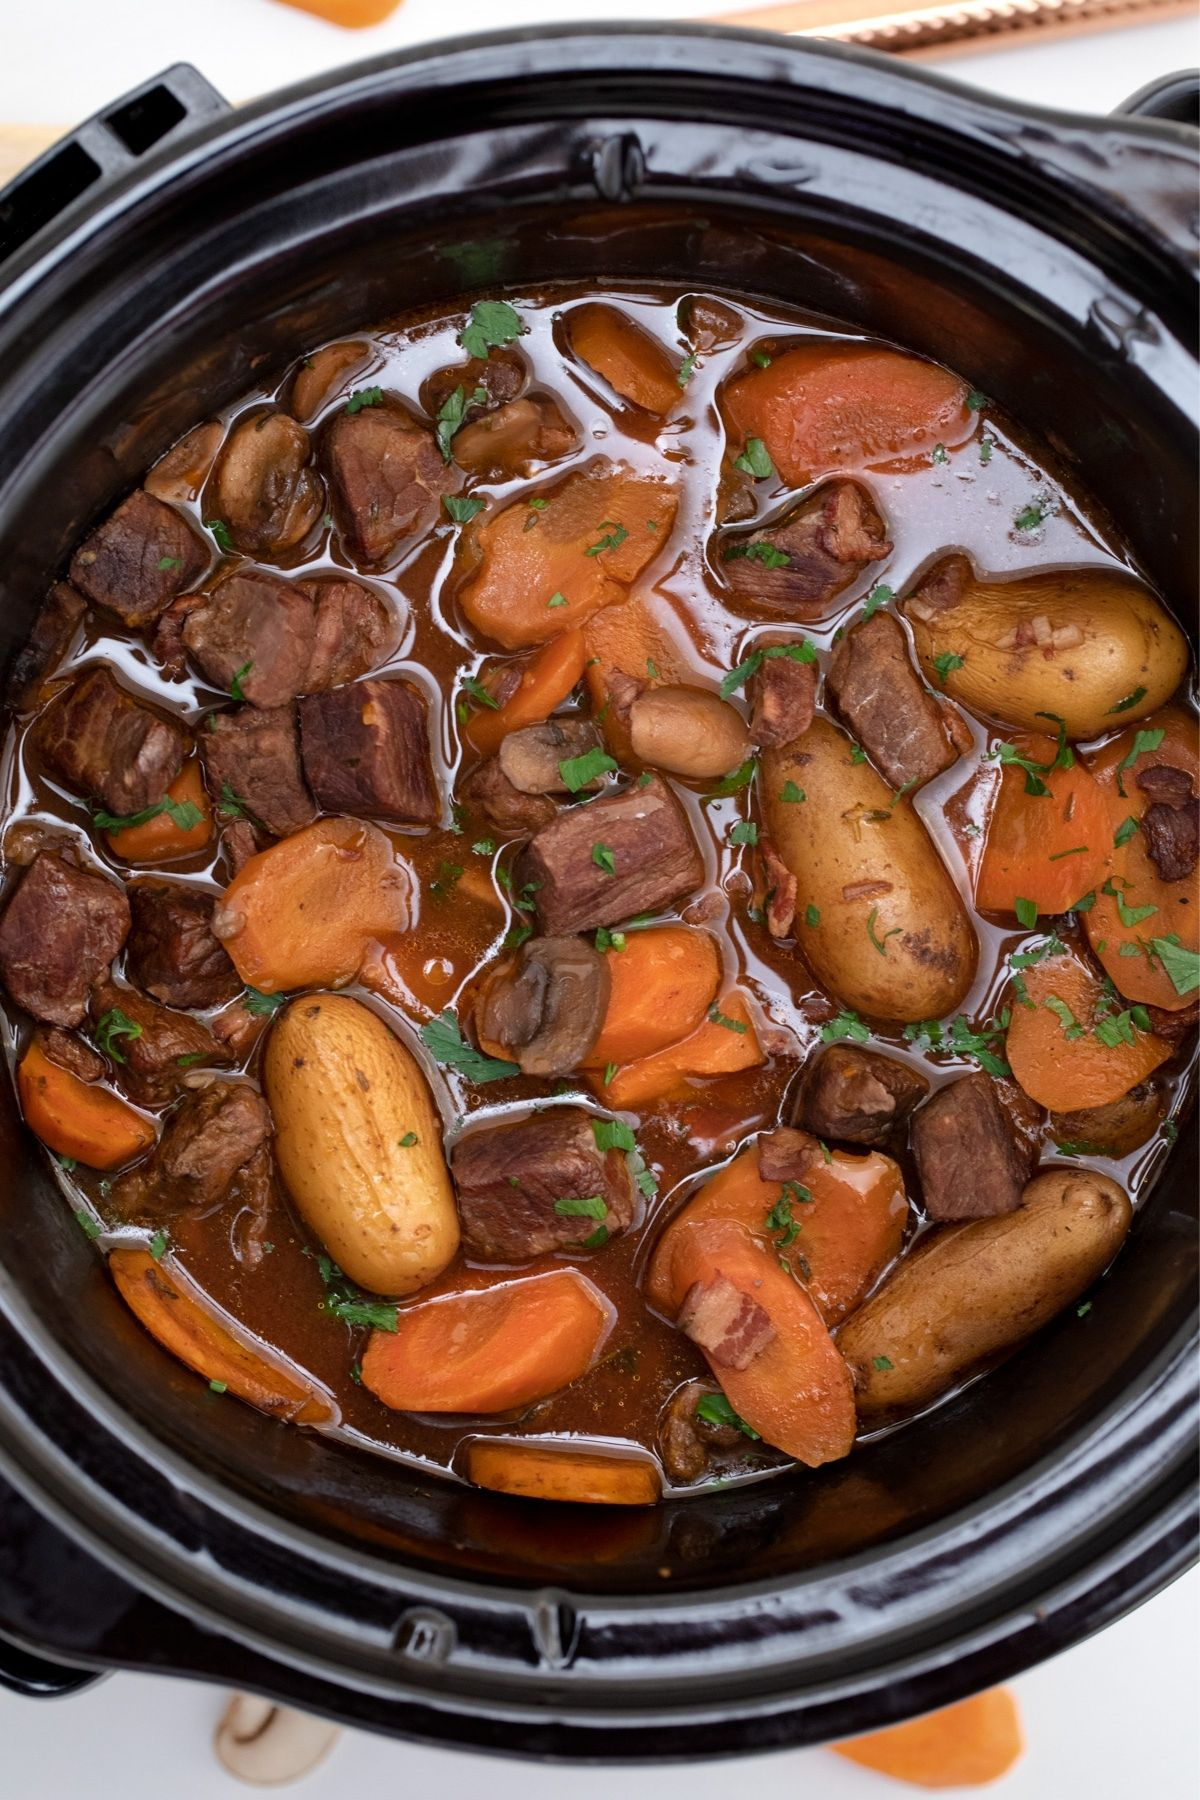 Round black crockpot filled with beef and vegetables in sauce